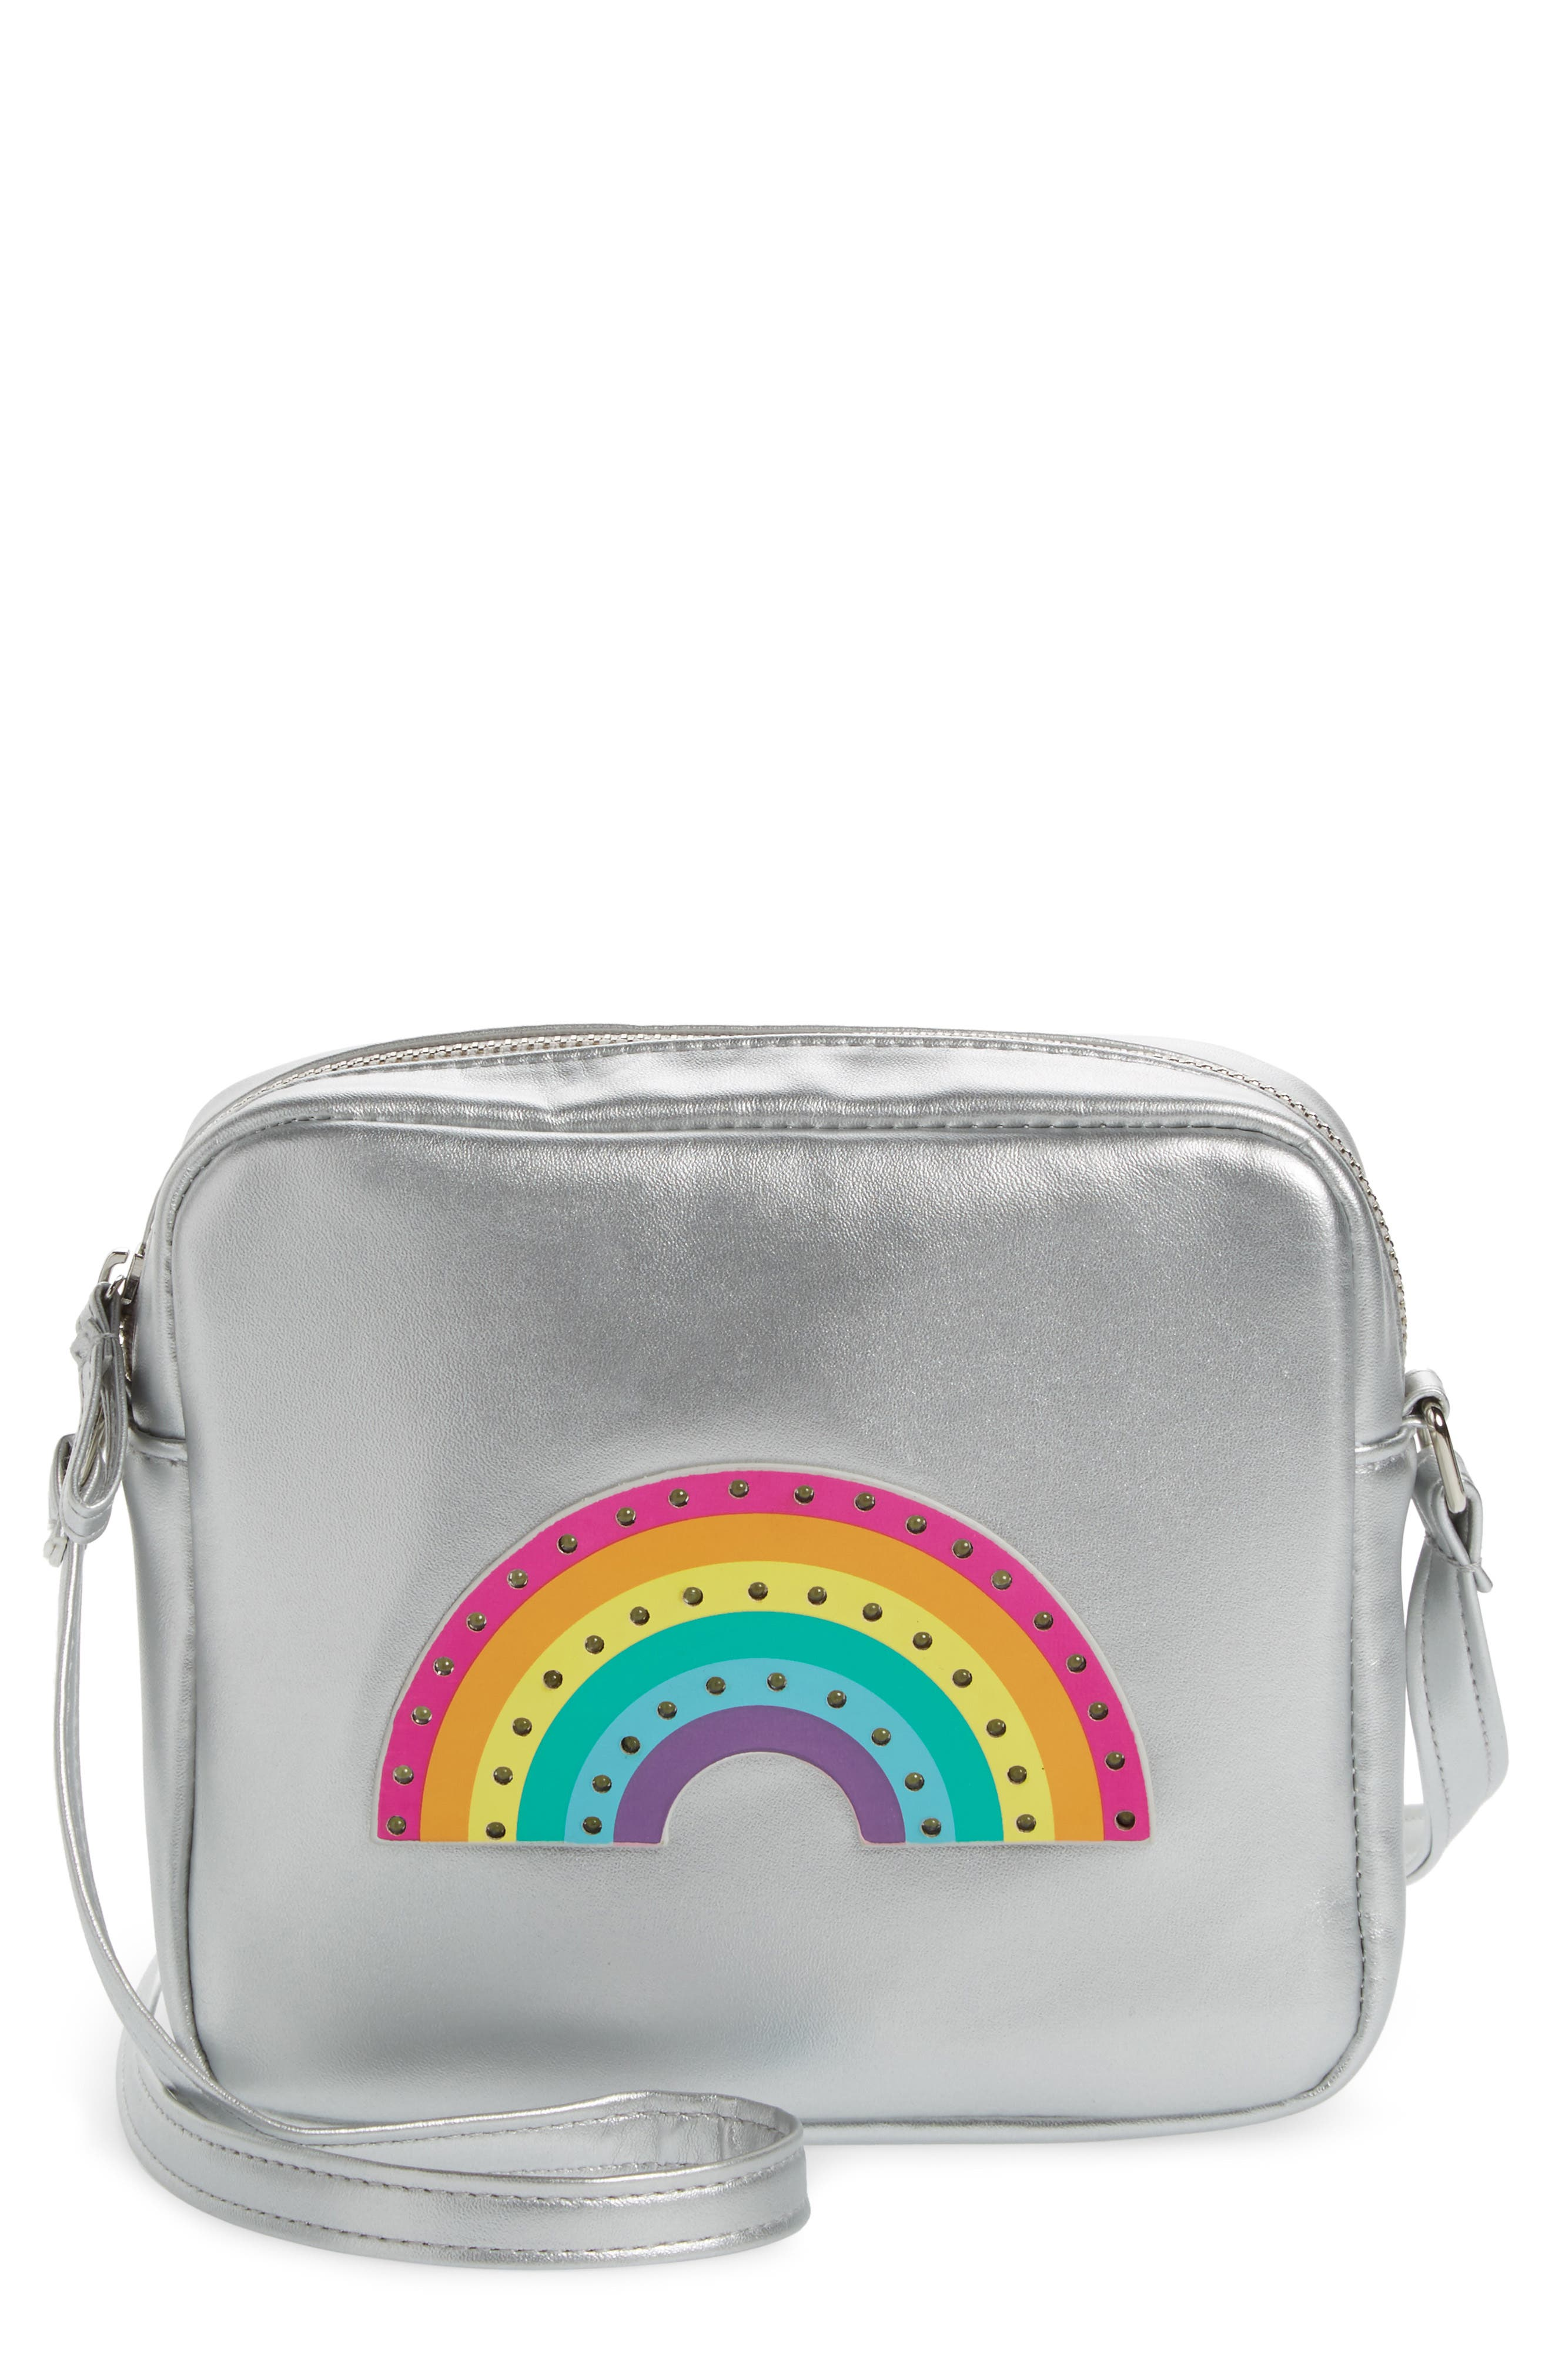 Capelli LED Light-Up Rainbow Faux Leather Crossbody Bag,                         Main,                         color, Silver Combo